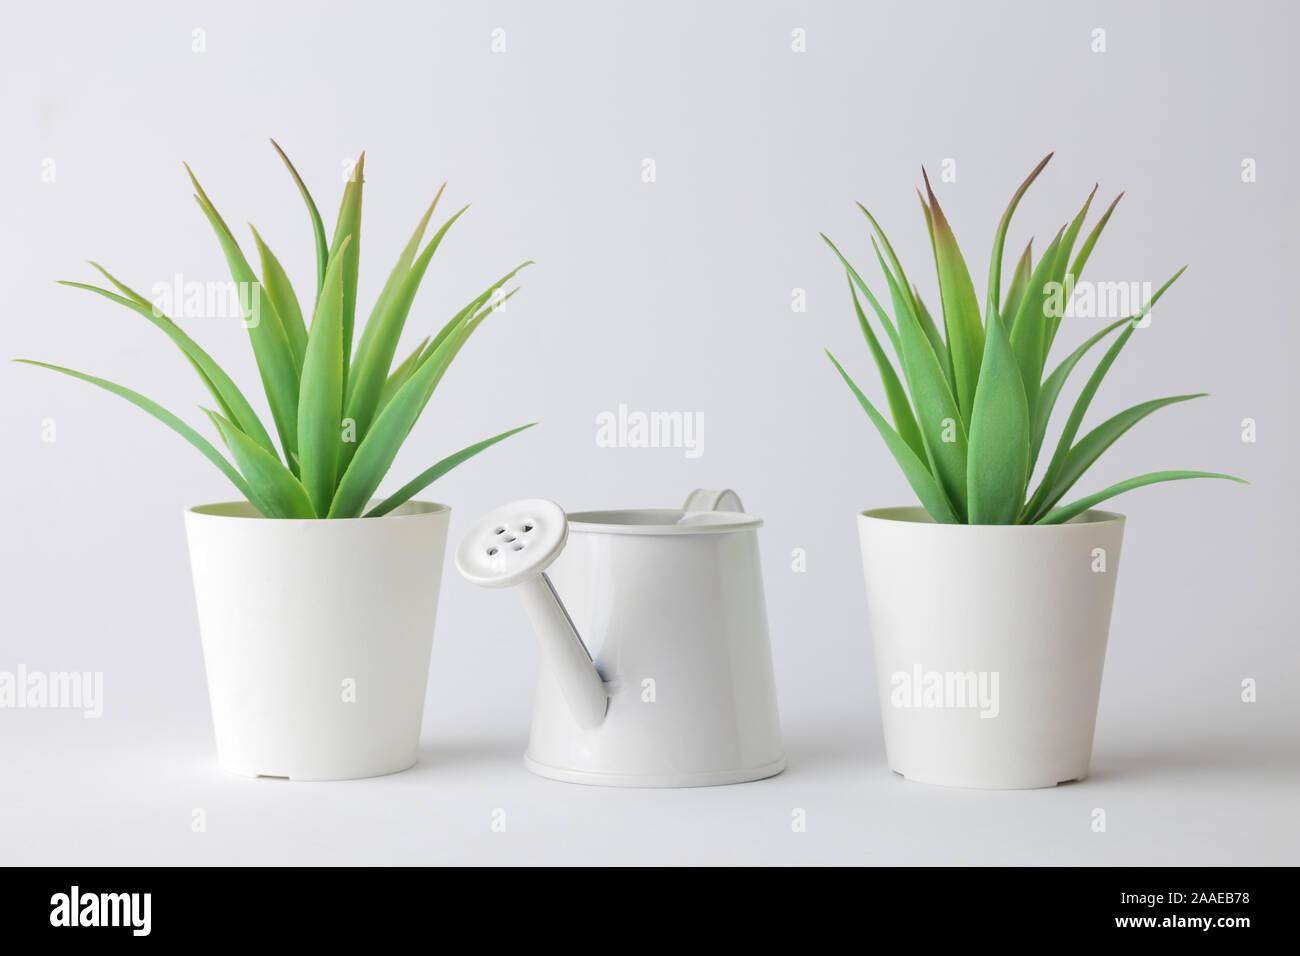 Small Green Plants In Pots And Watering Can Home Design Abstract